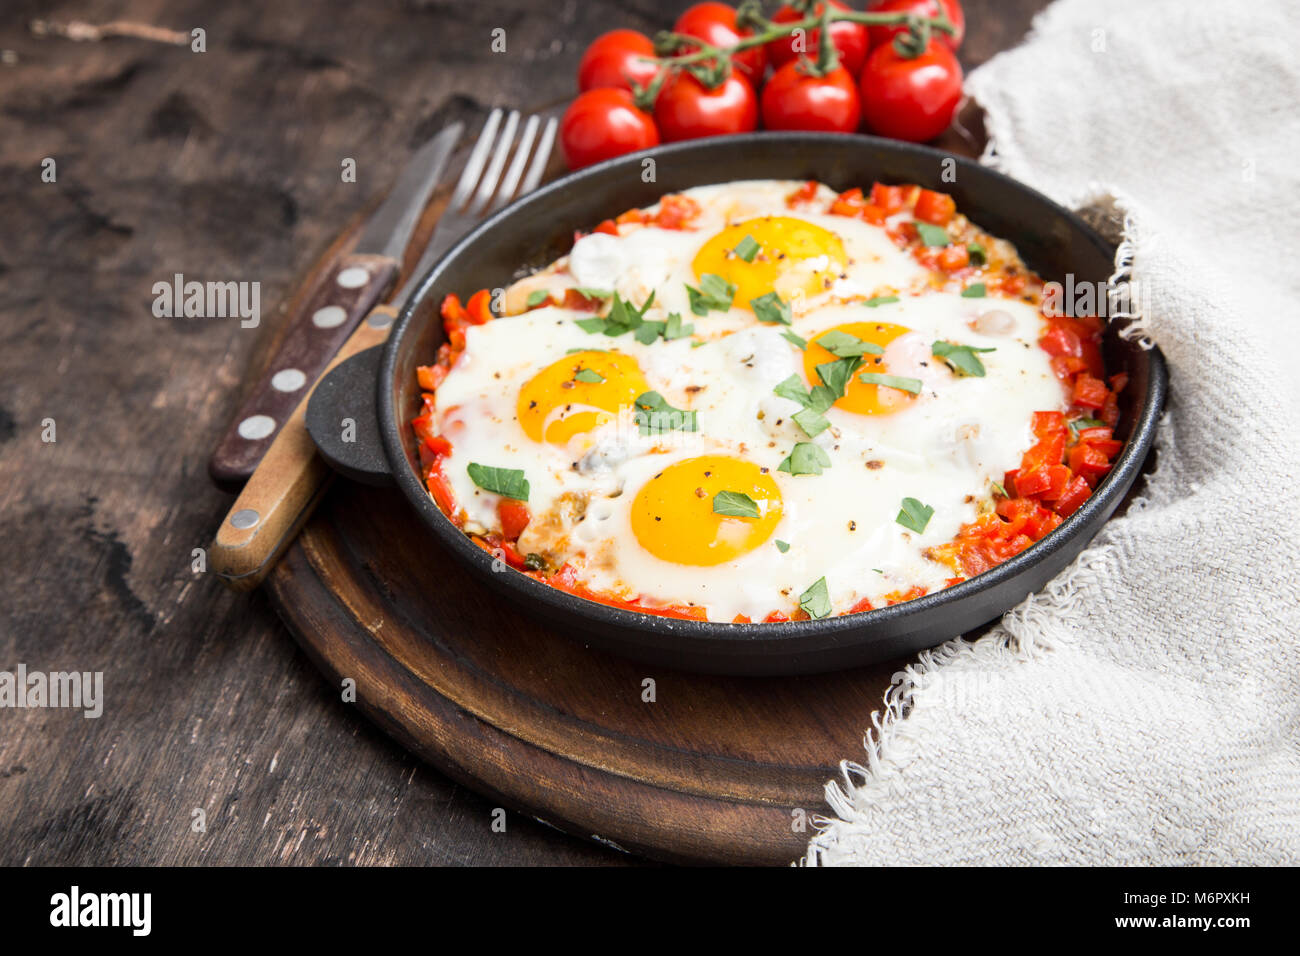 Tasty and Healthy Shakshuka in a Frying Pan. Fried eggs with tomatoes, bell pepper, vegetables and herbs. Middle - Stock Image